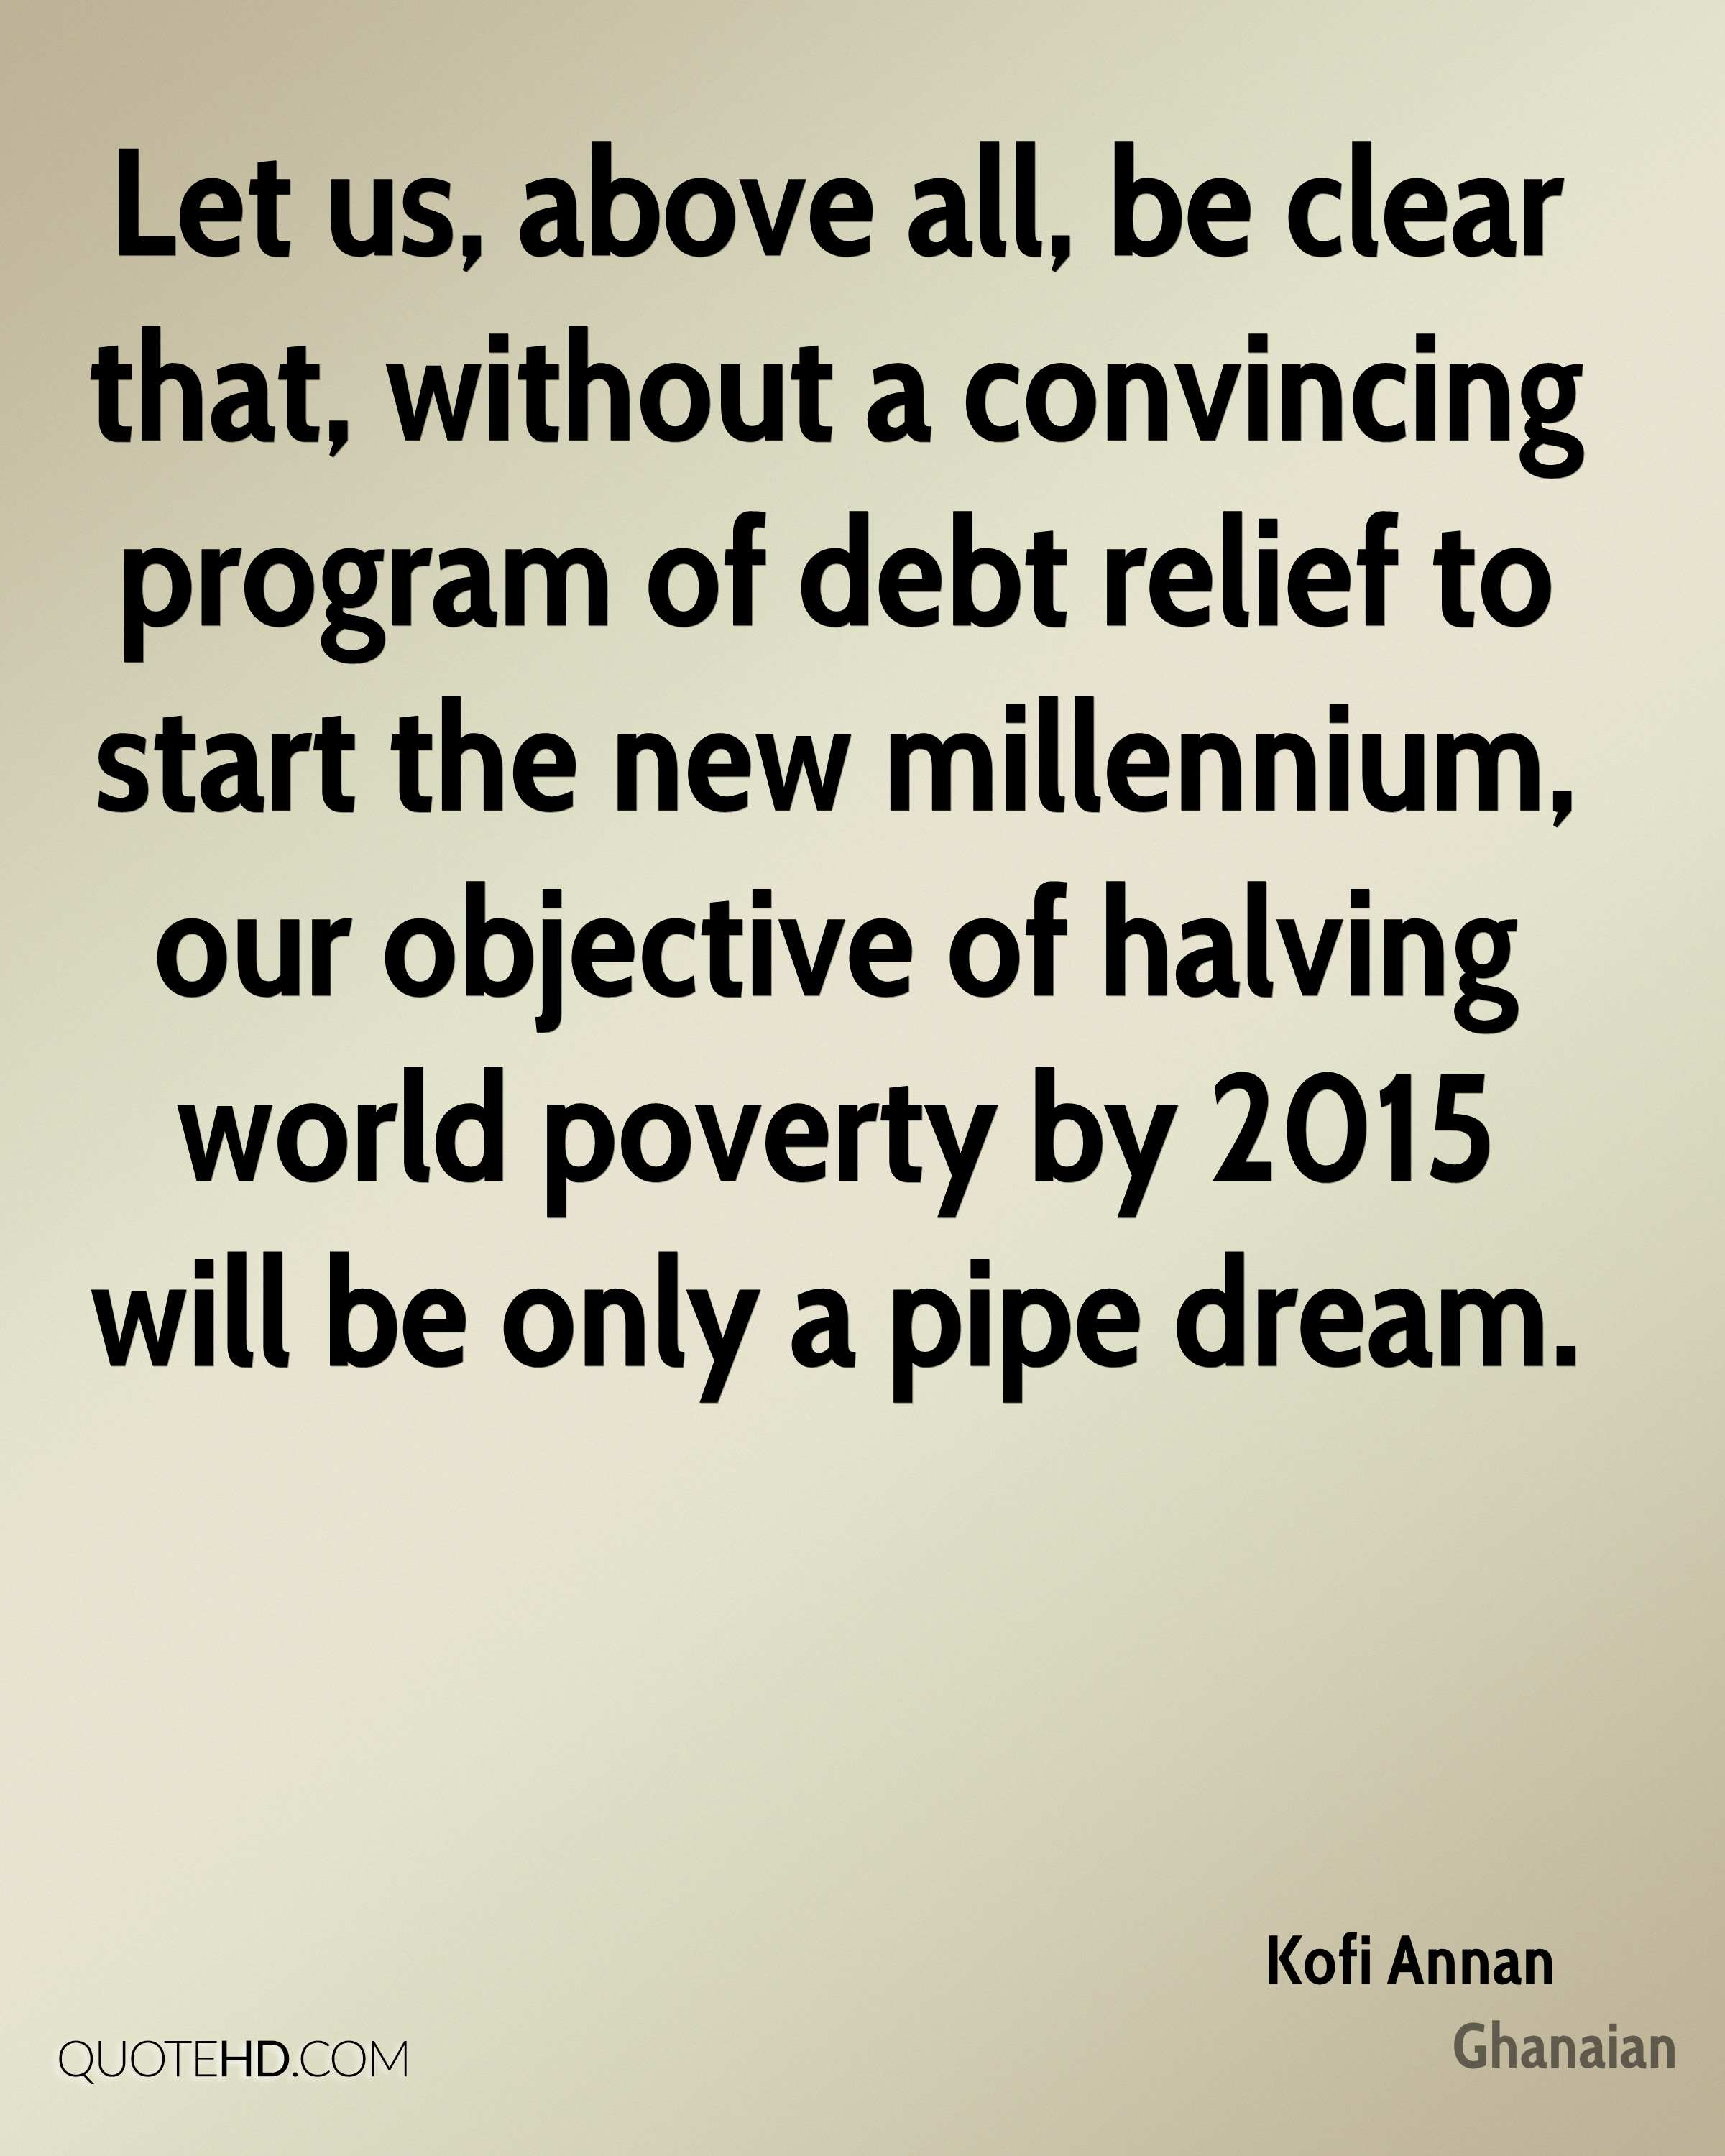 Let us, above all, be clear that, without a convincing program of debt relief to start the new millennium, our objective of halving world poverty by 2015 will be only a pipe dream.